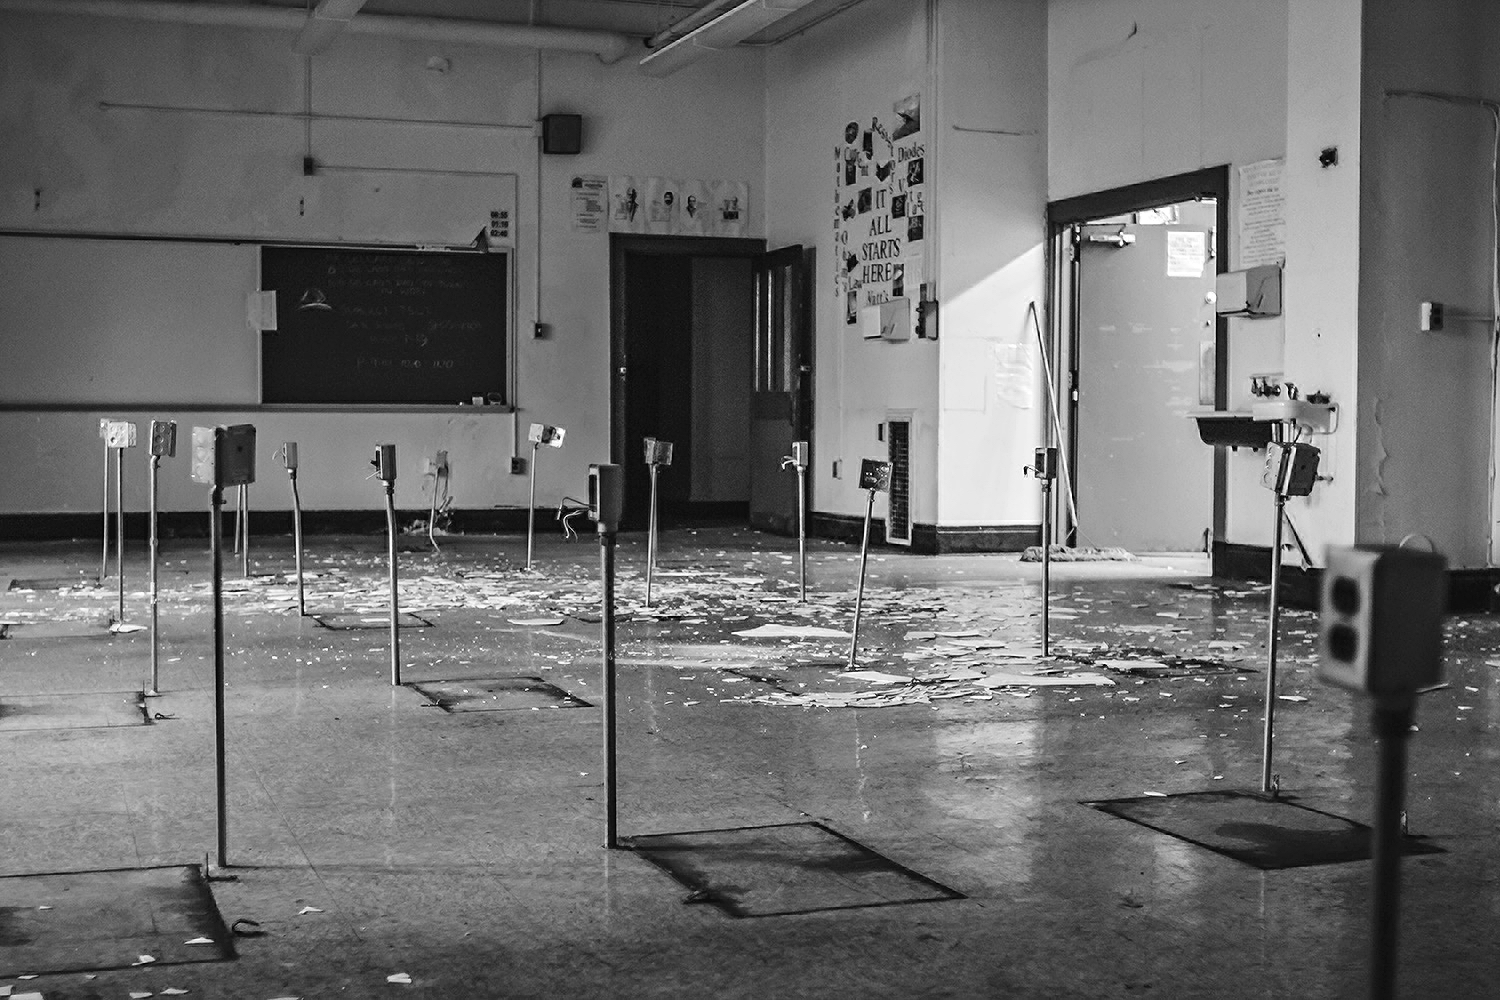 A science classroom more than six years after the building was closed, 2014. Photo: Cooper Miller.